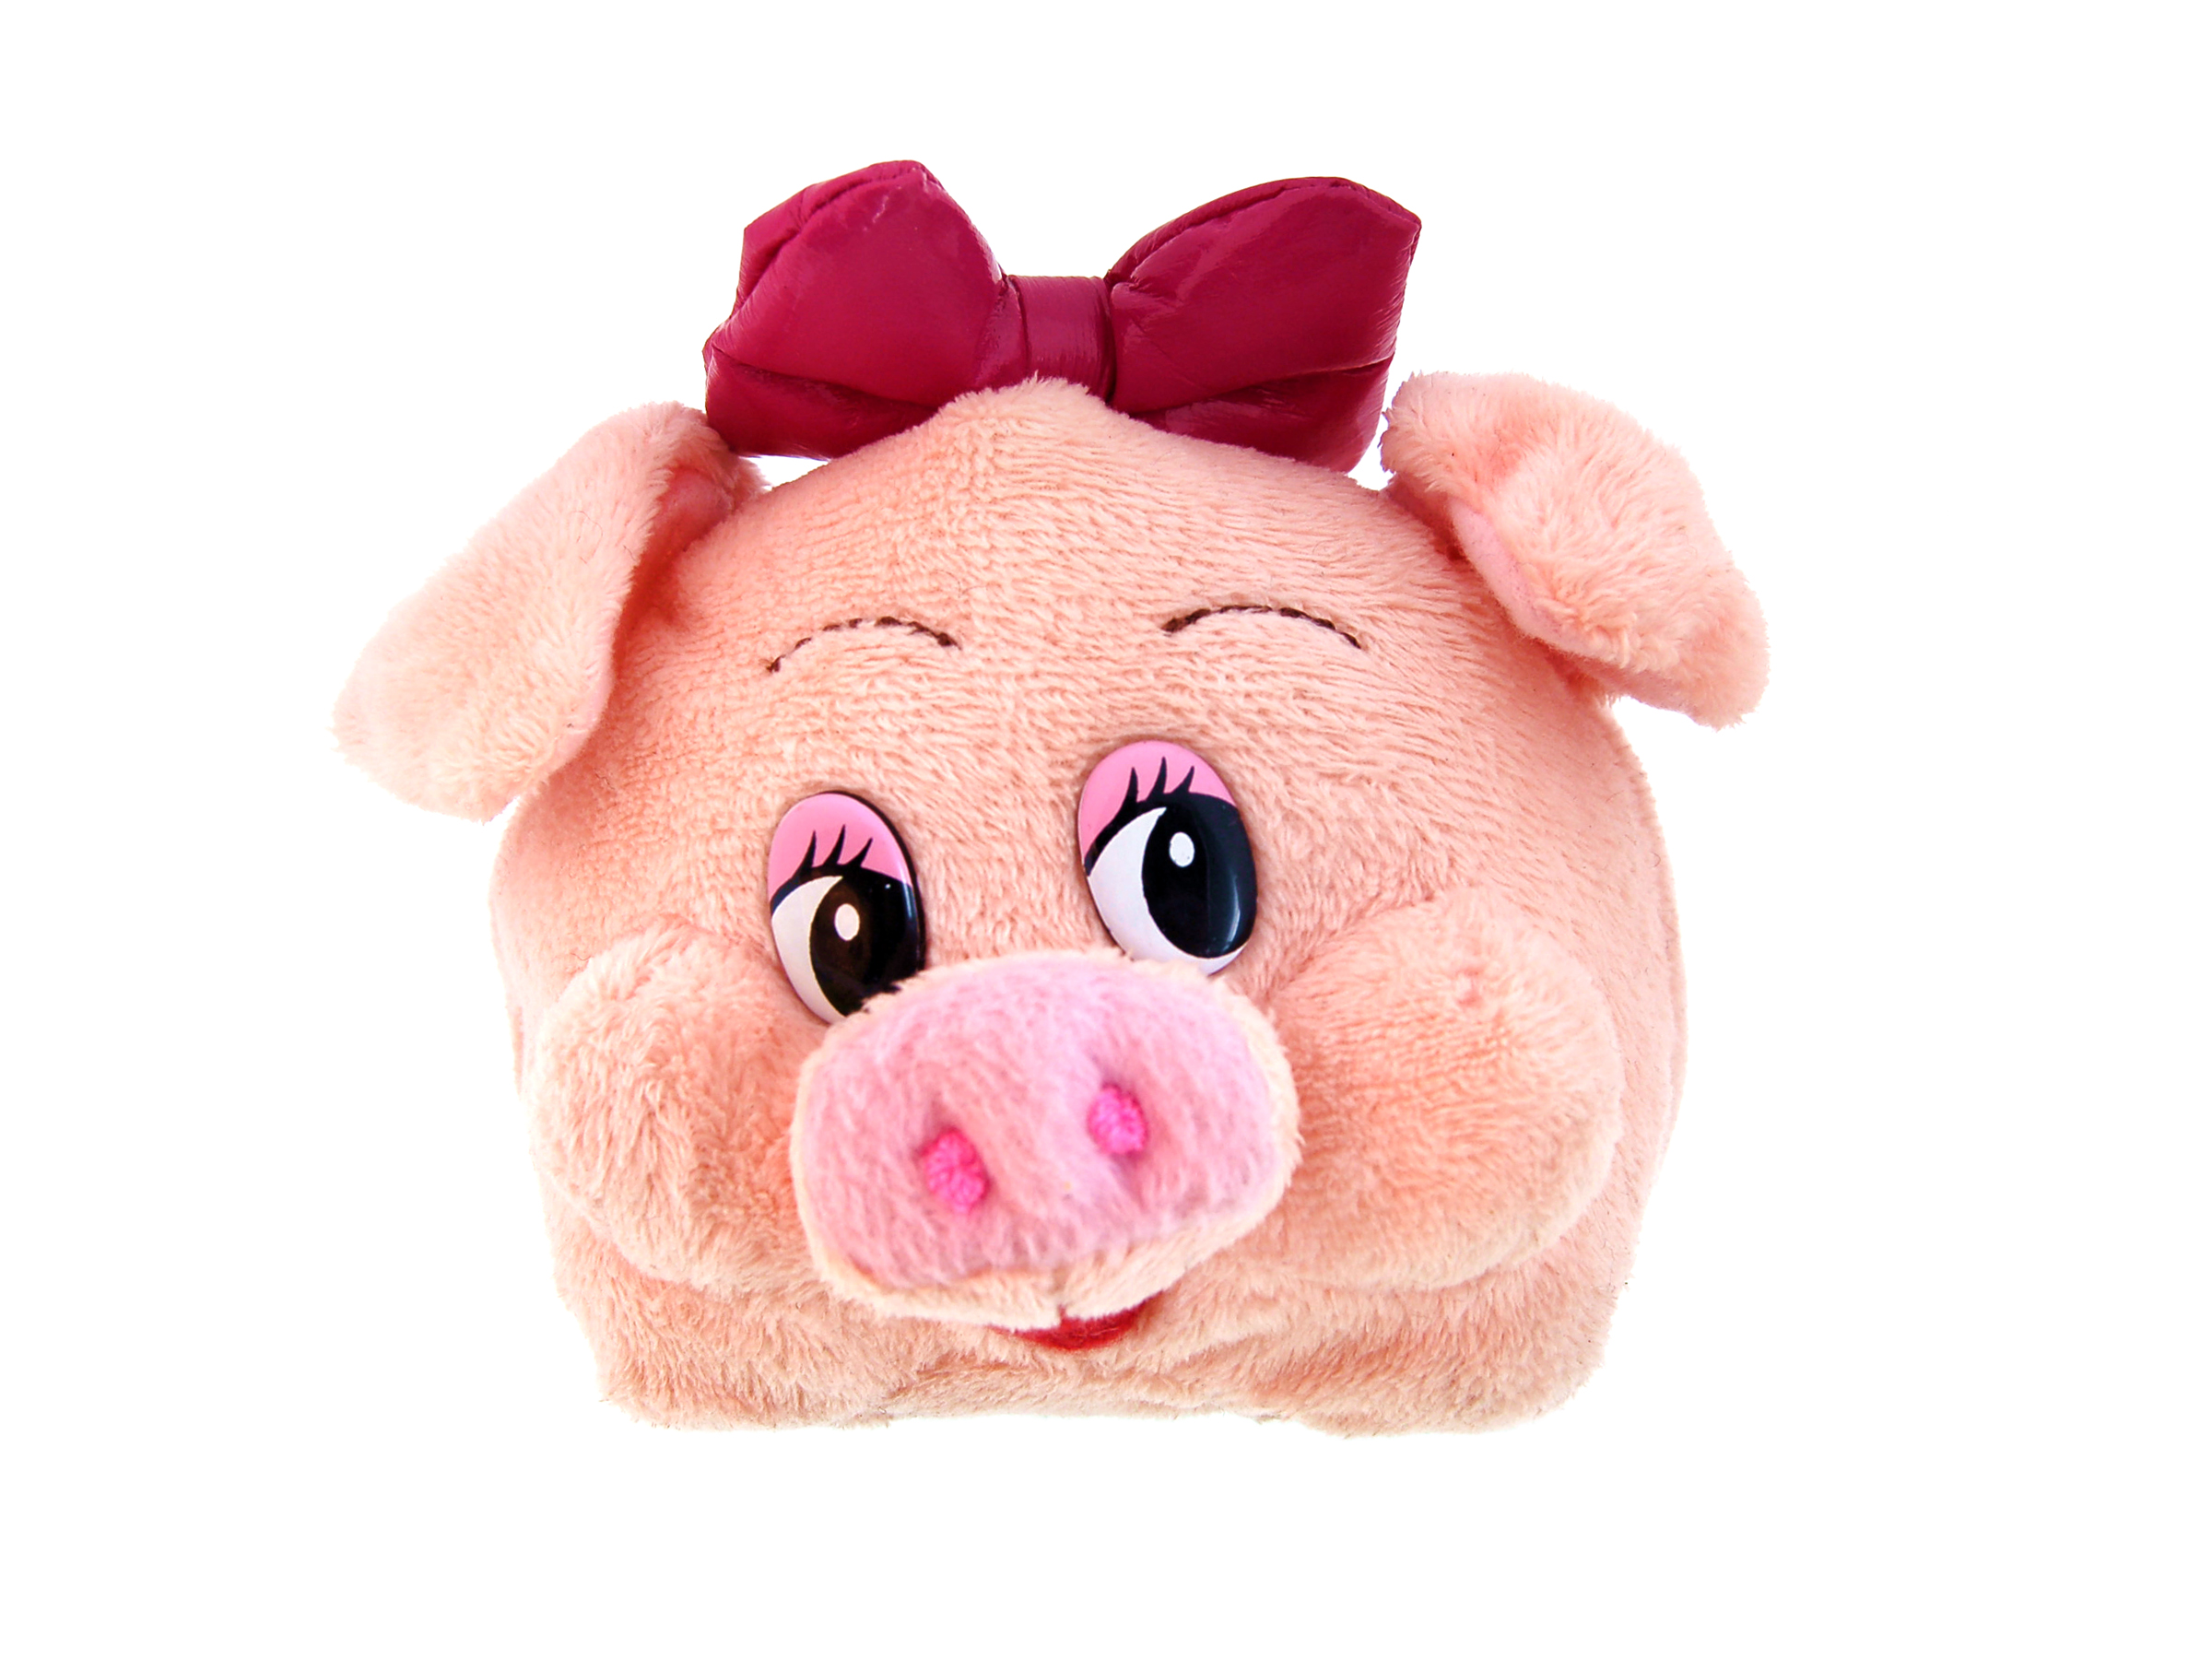 toy pig, Pink, Single, Toy, Piglet, HQ Photo